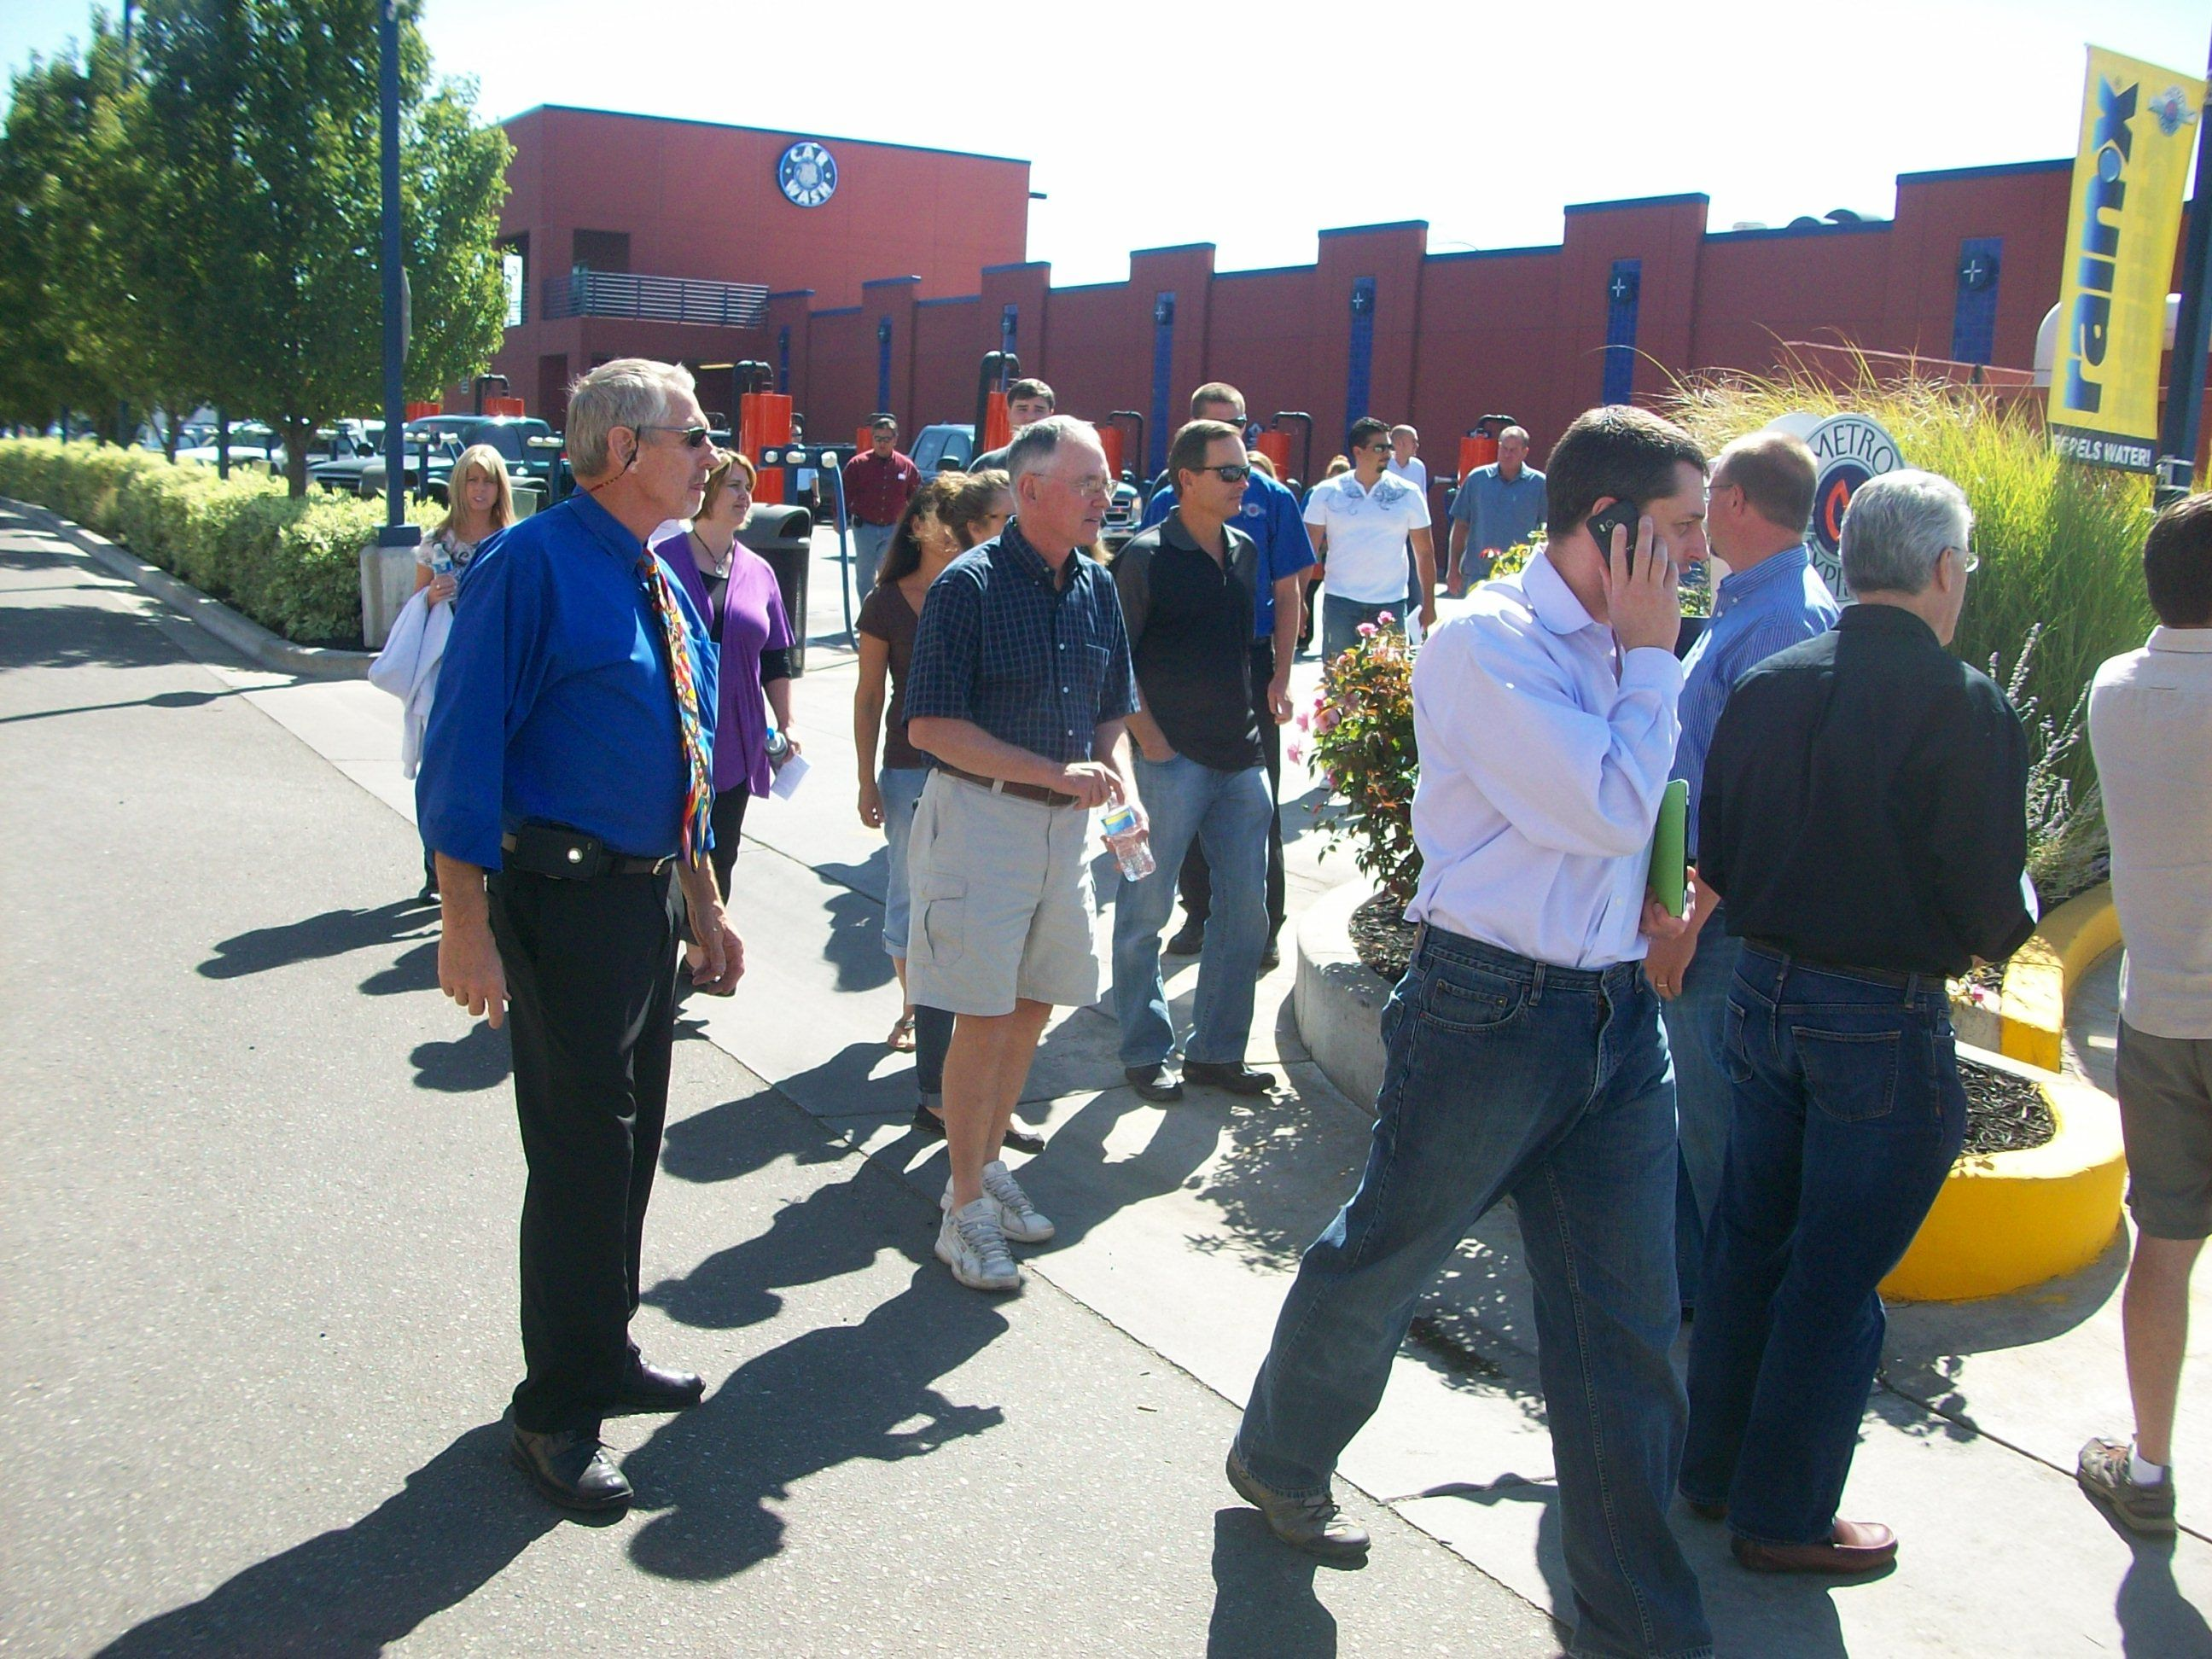 Car wash industry professionals touring metro express